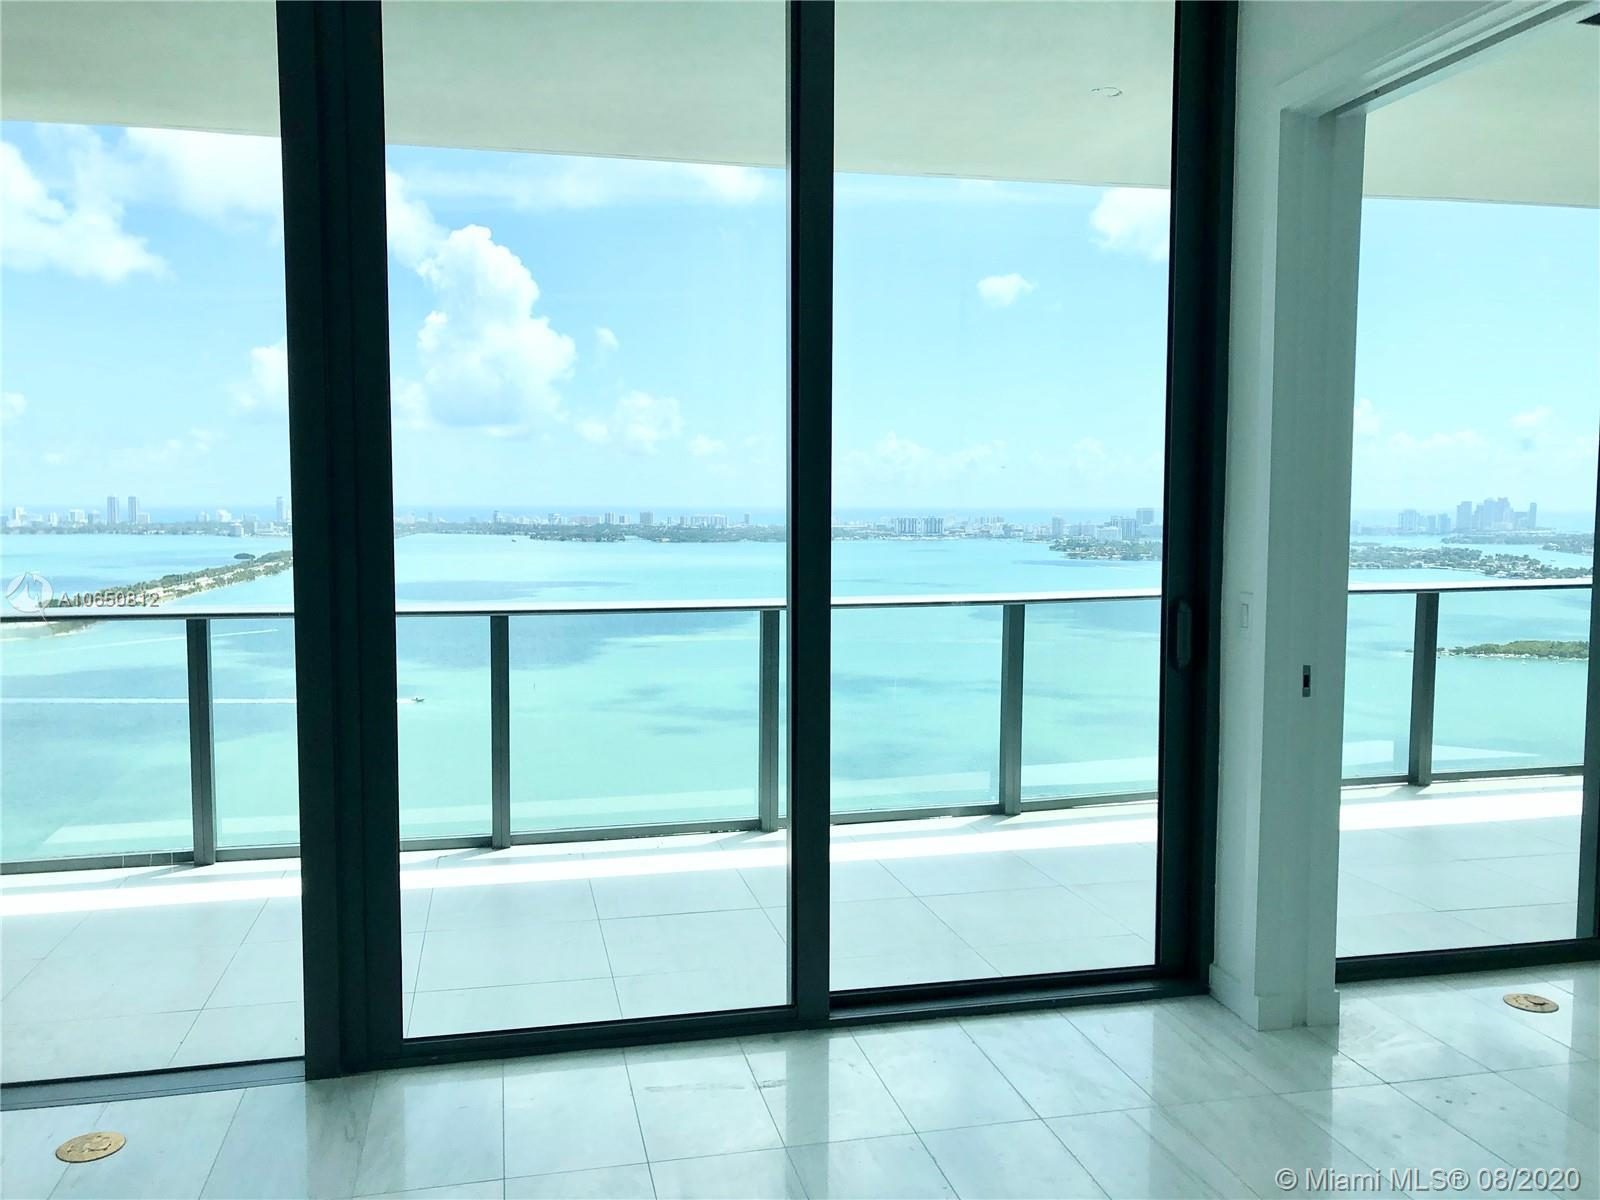 SELLER MUST SELL! Enjoy a breathless view from this brand new 1 Bed + Den at Gran Paraiso. 10 floor